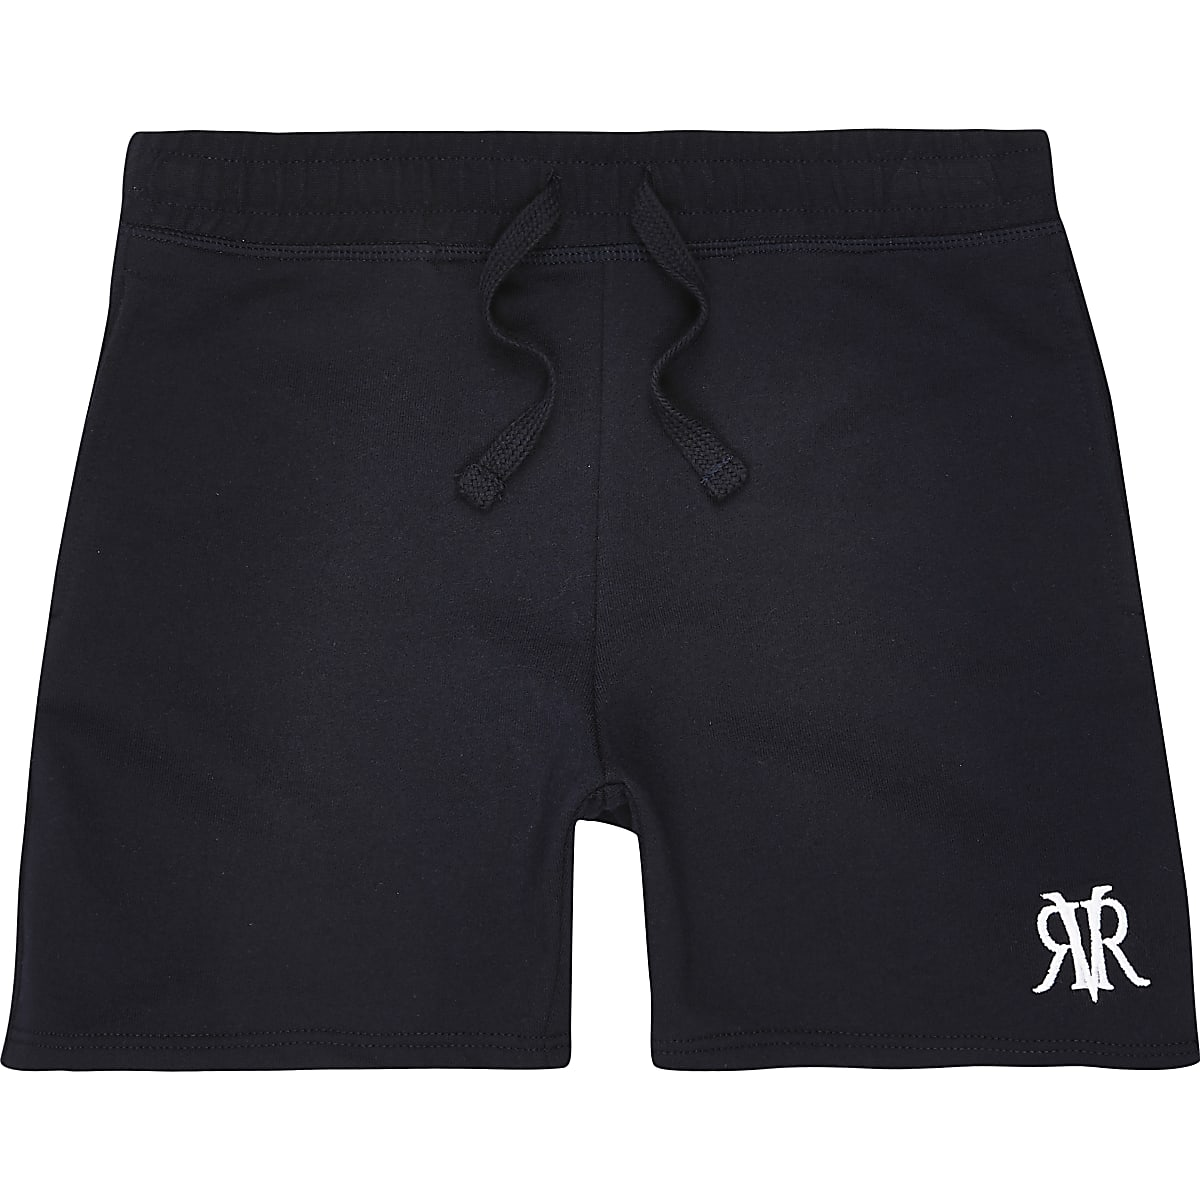 Boys navy RVR embroidered shorts